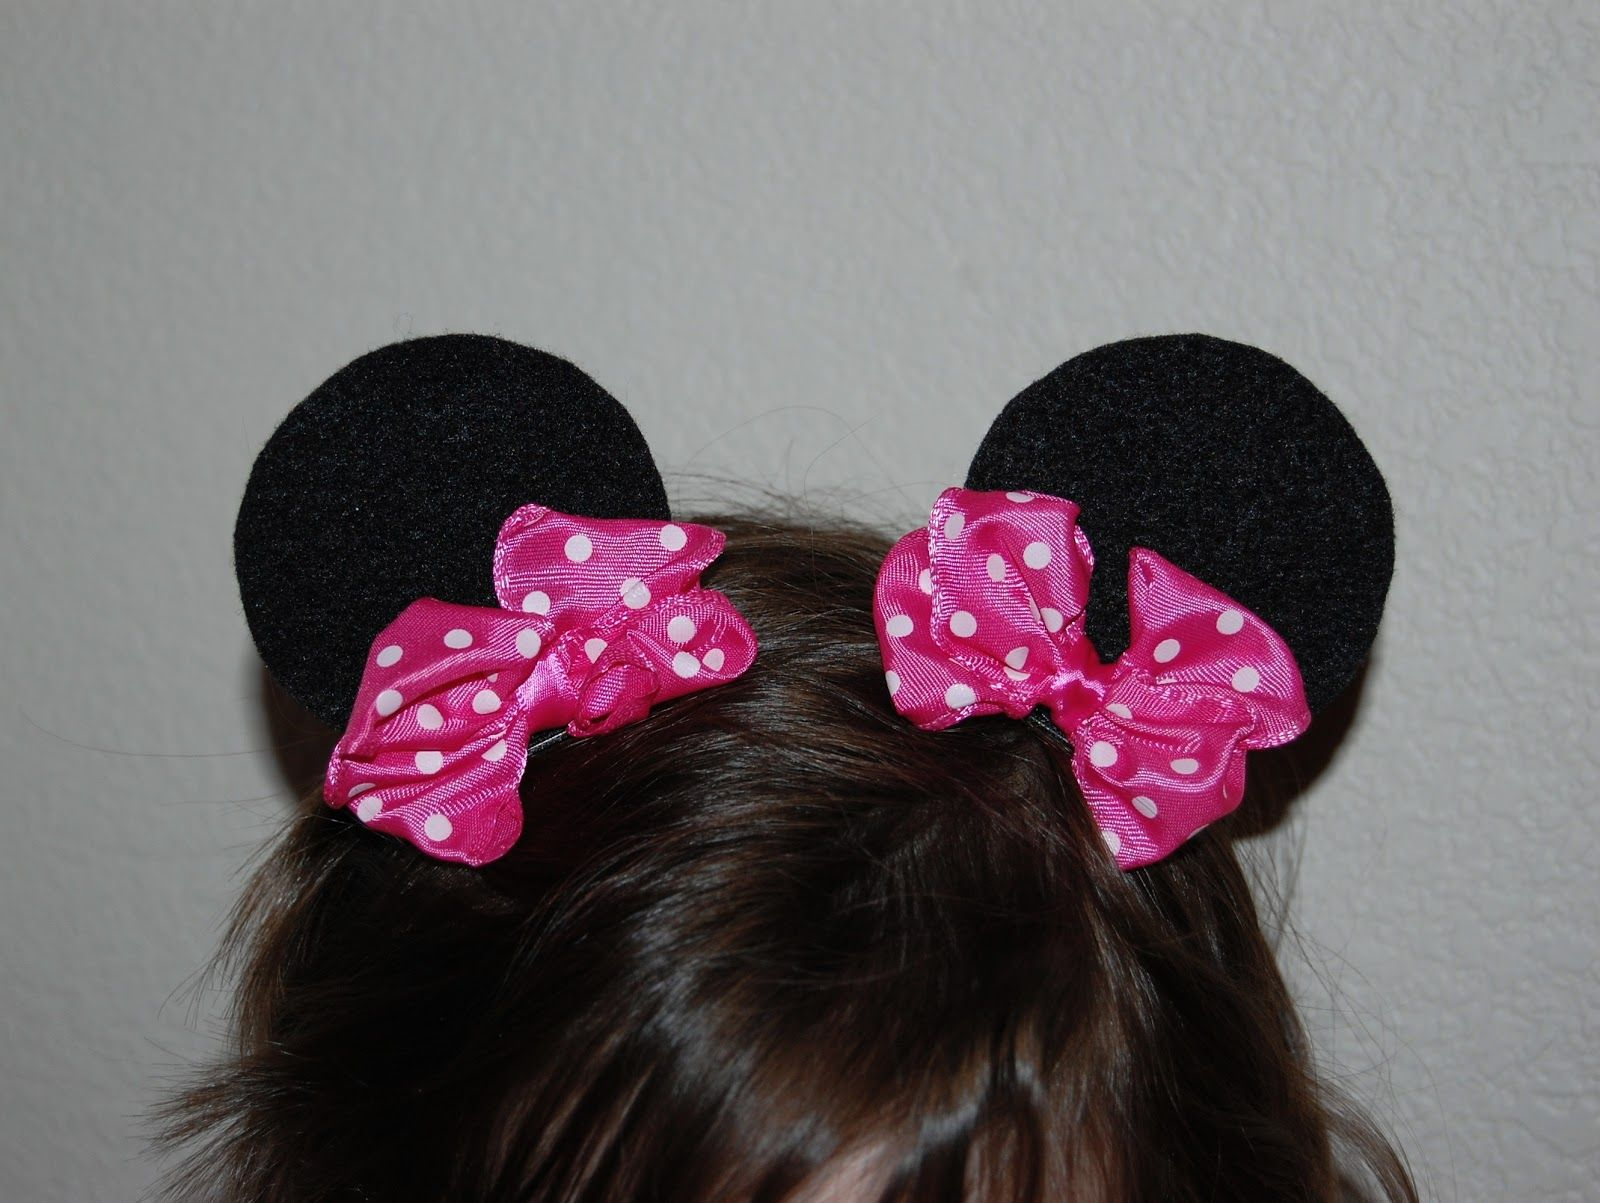 tutorial for adorable minnie mouse ear hair clips. made with